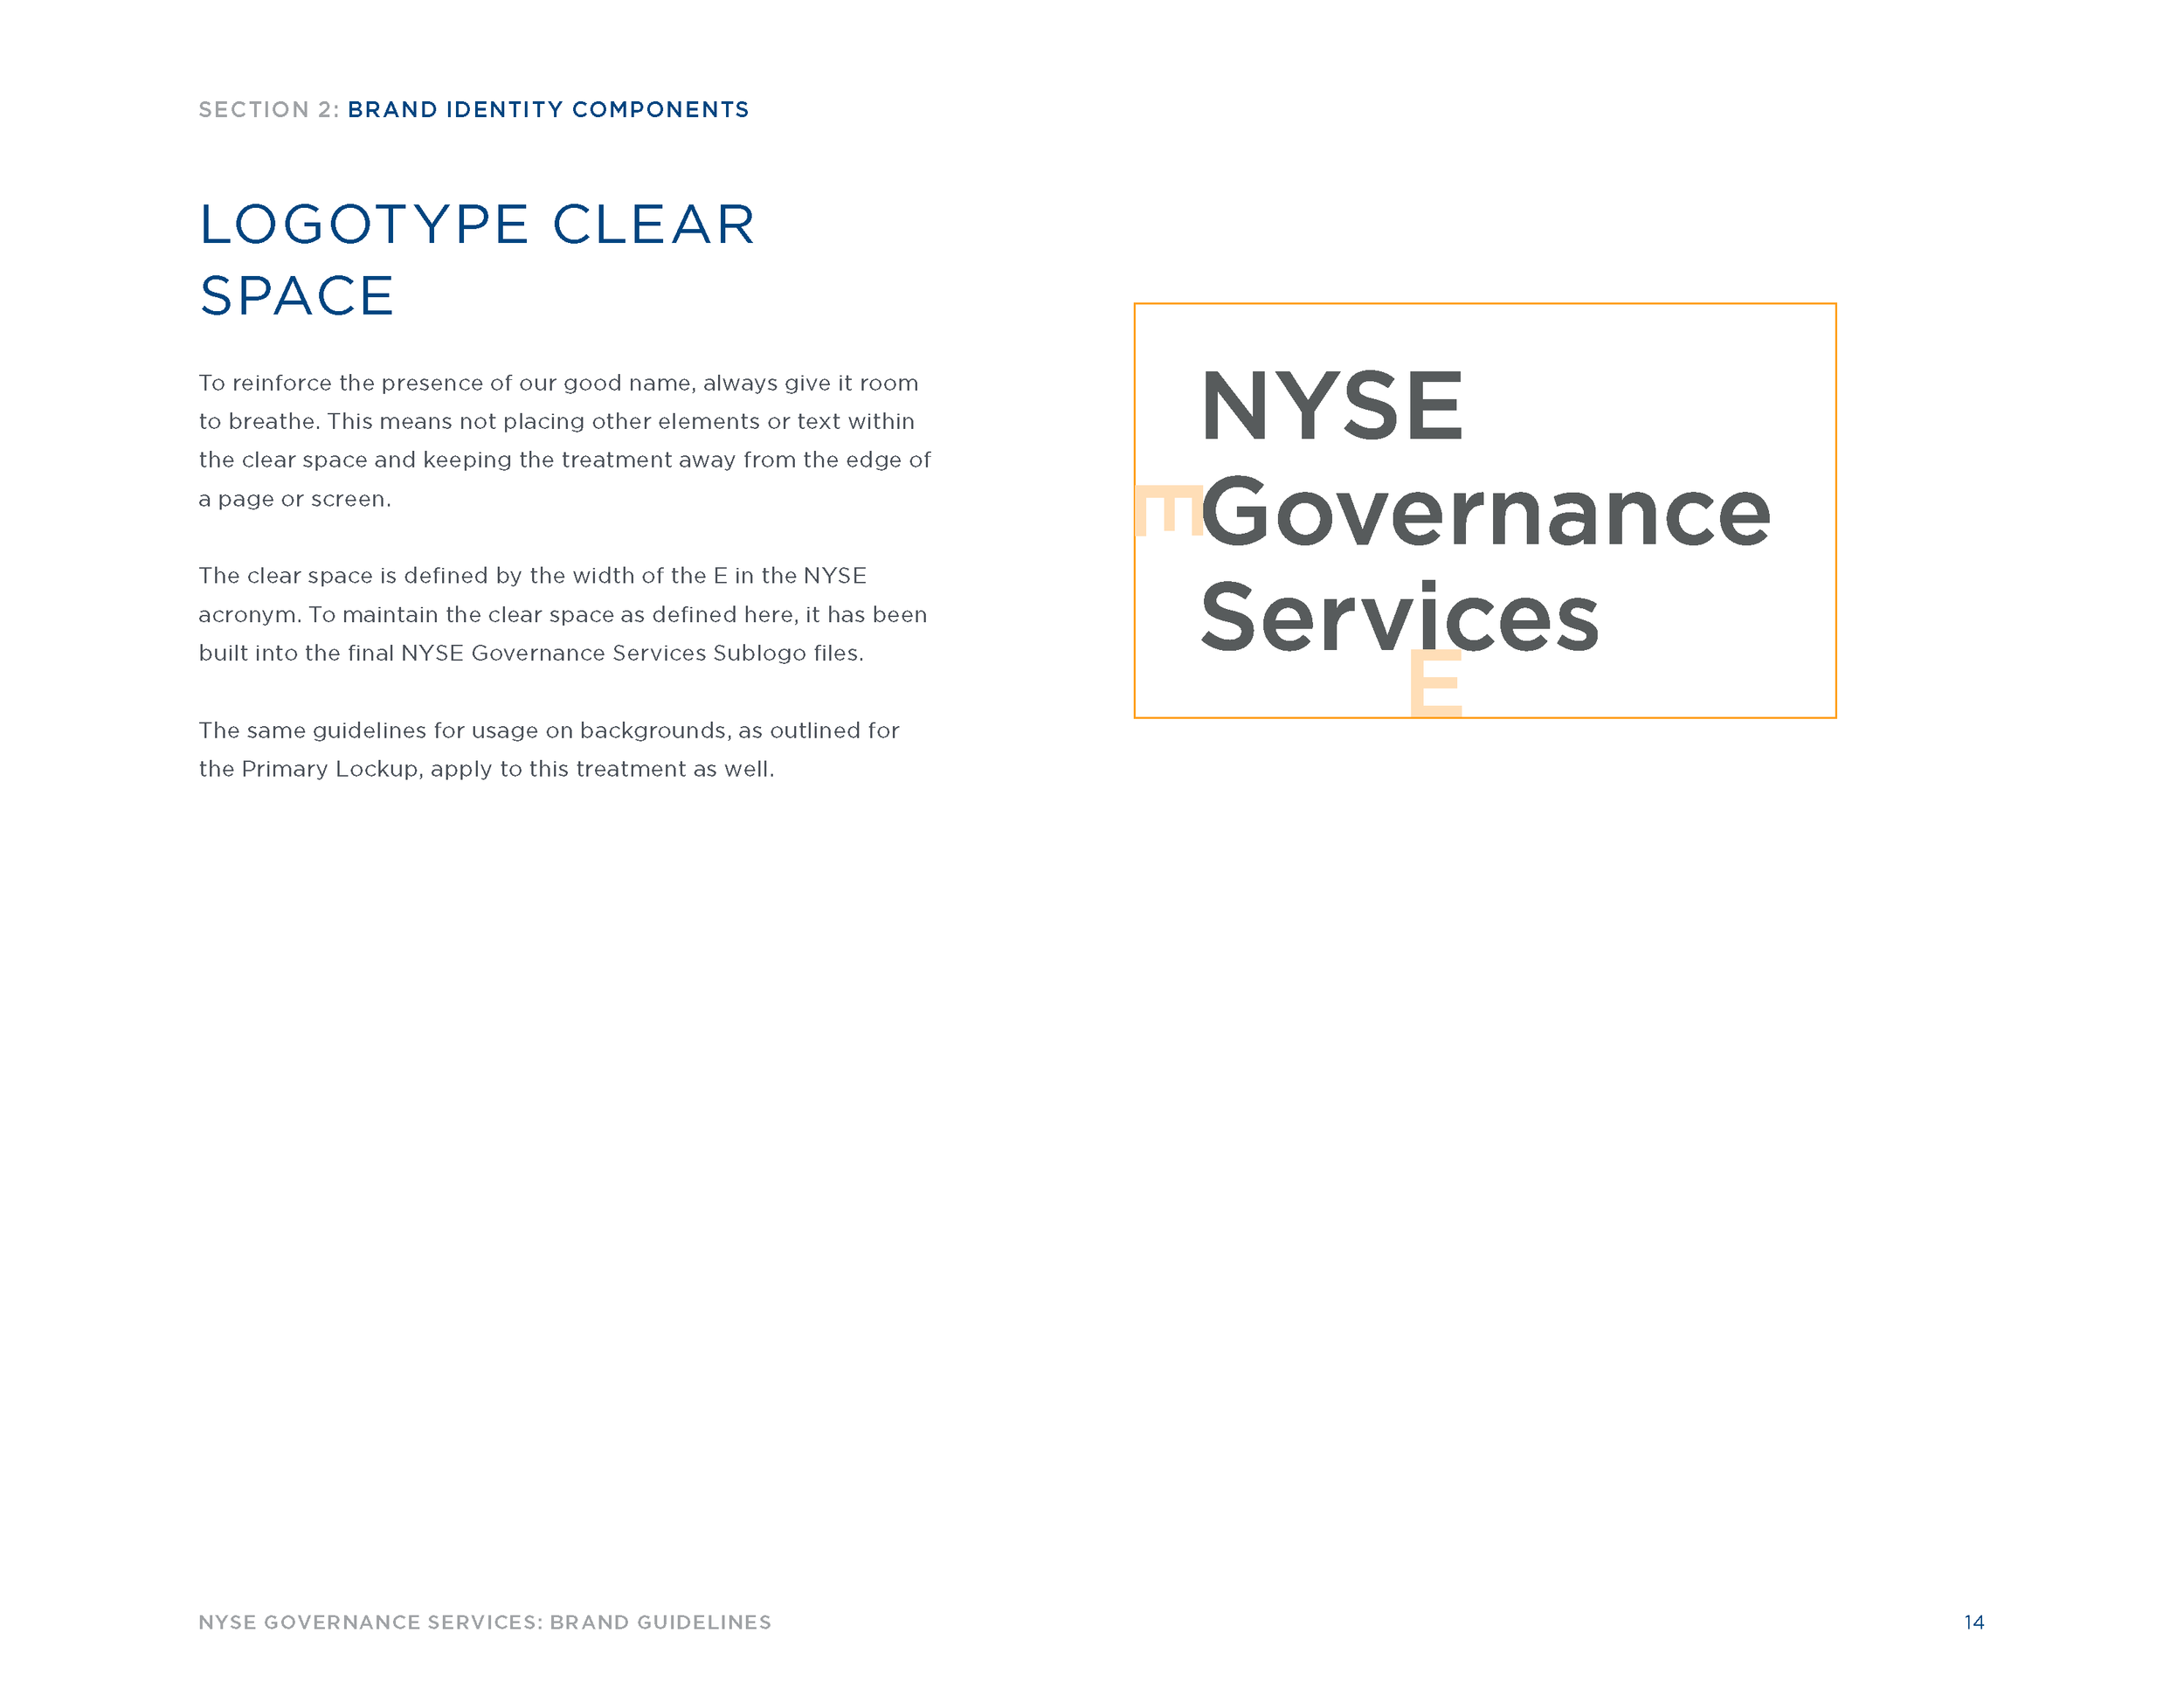 NYSE-GS-StyleGuide_v01.2_Page_14.png